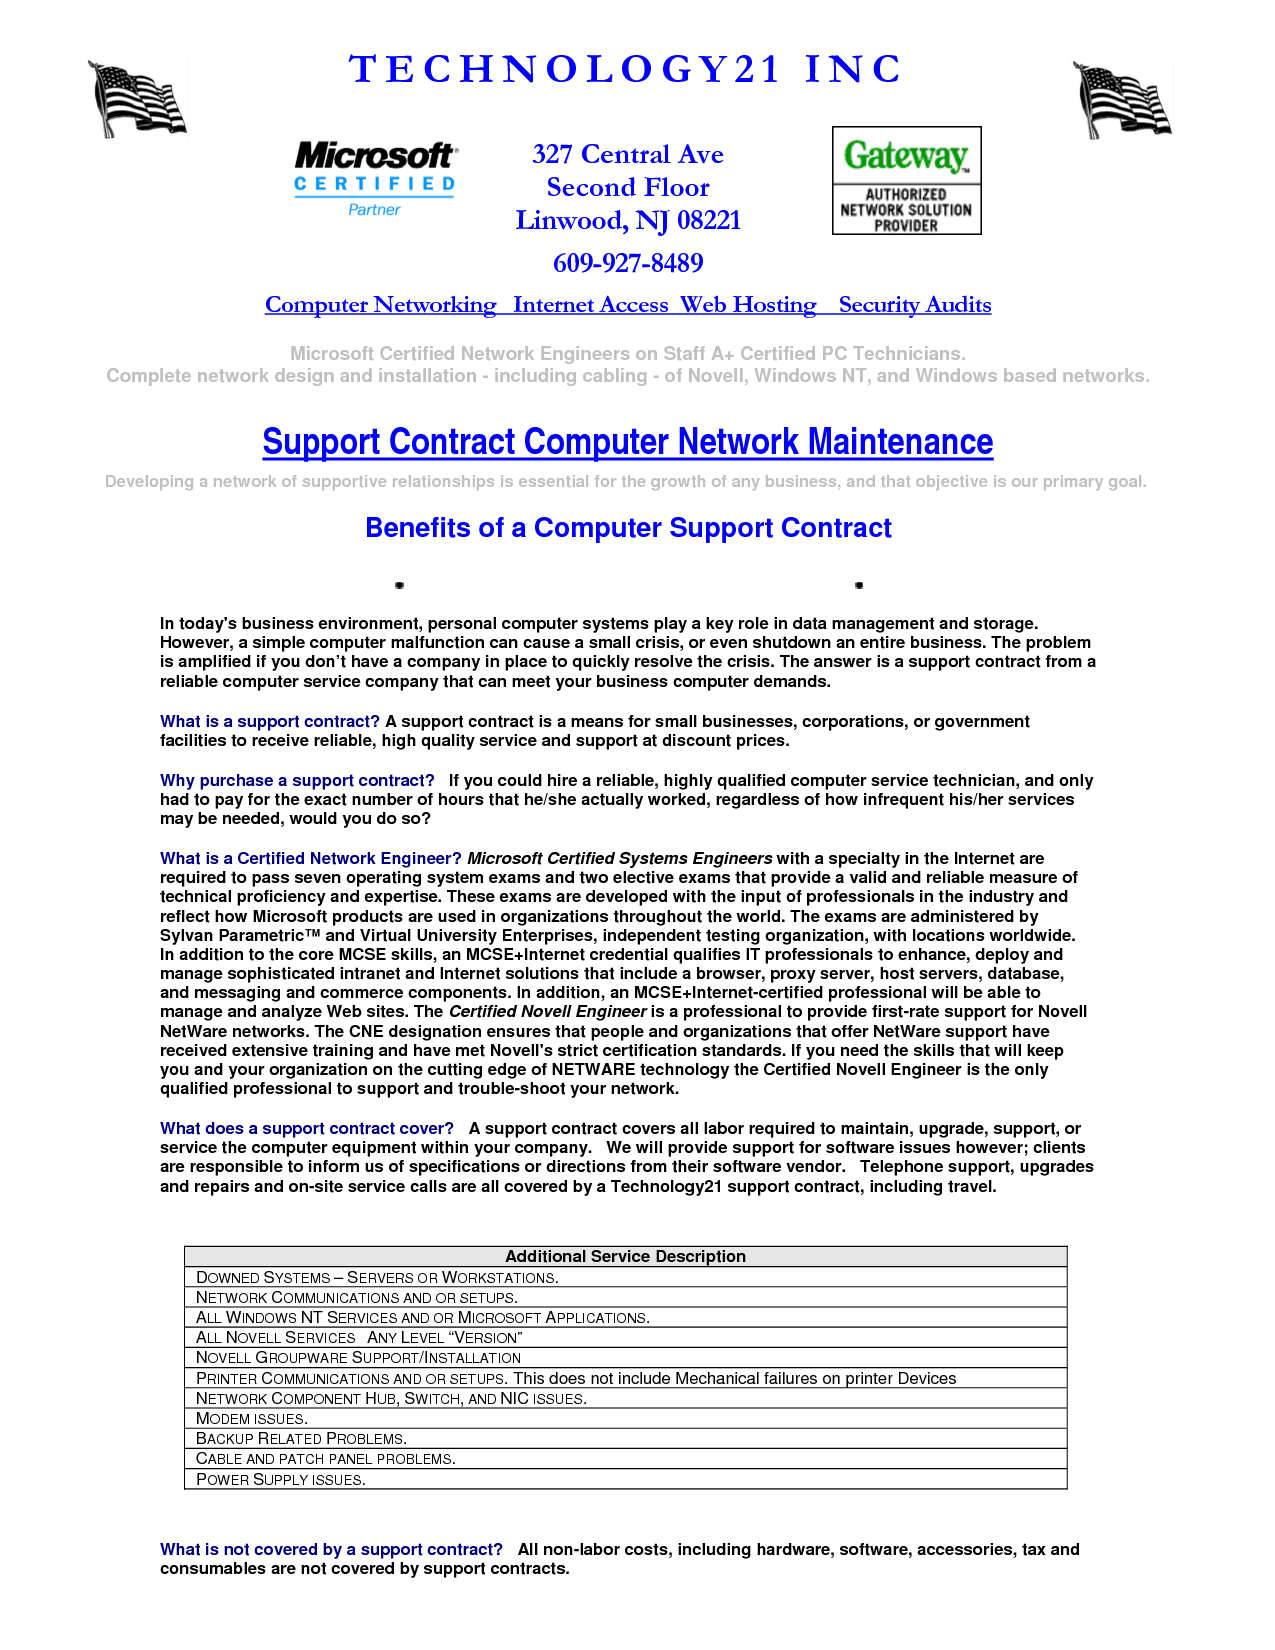 Computer maintenance contract sample free printable for Pool service contract template